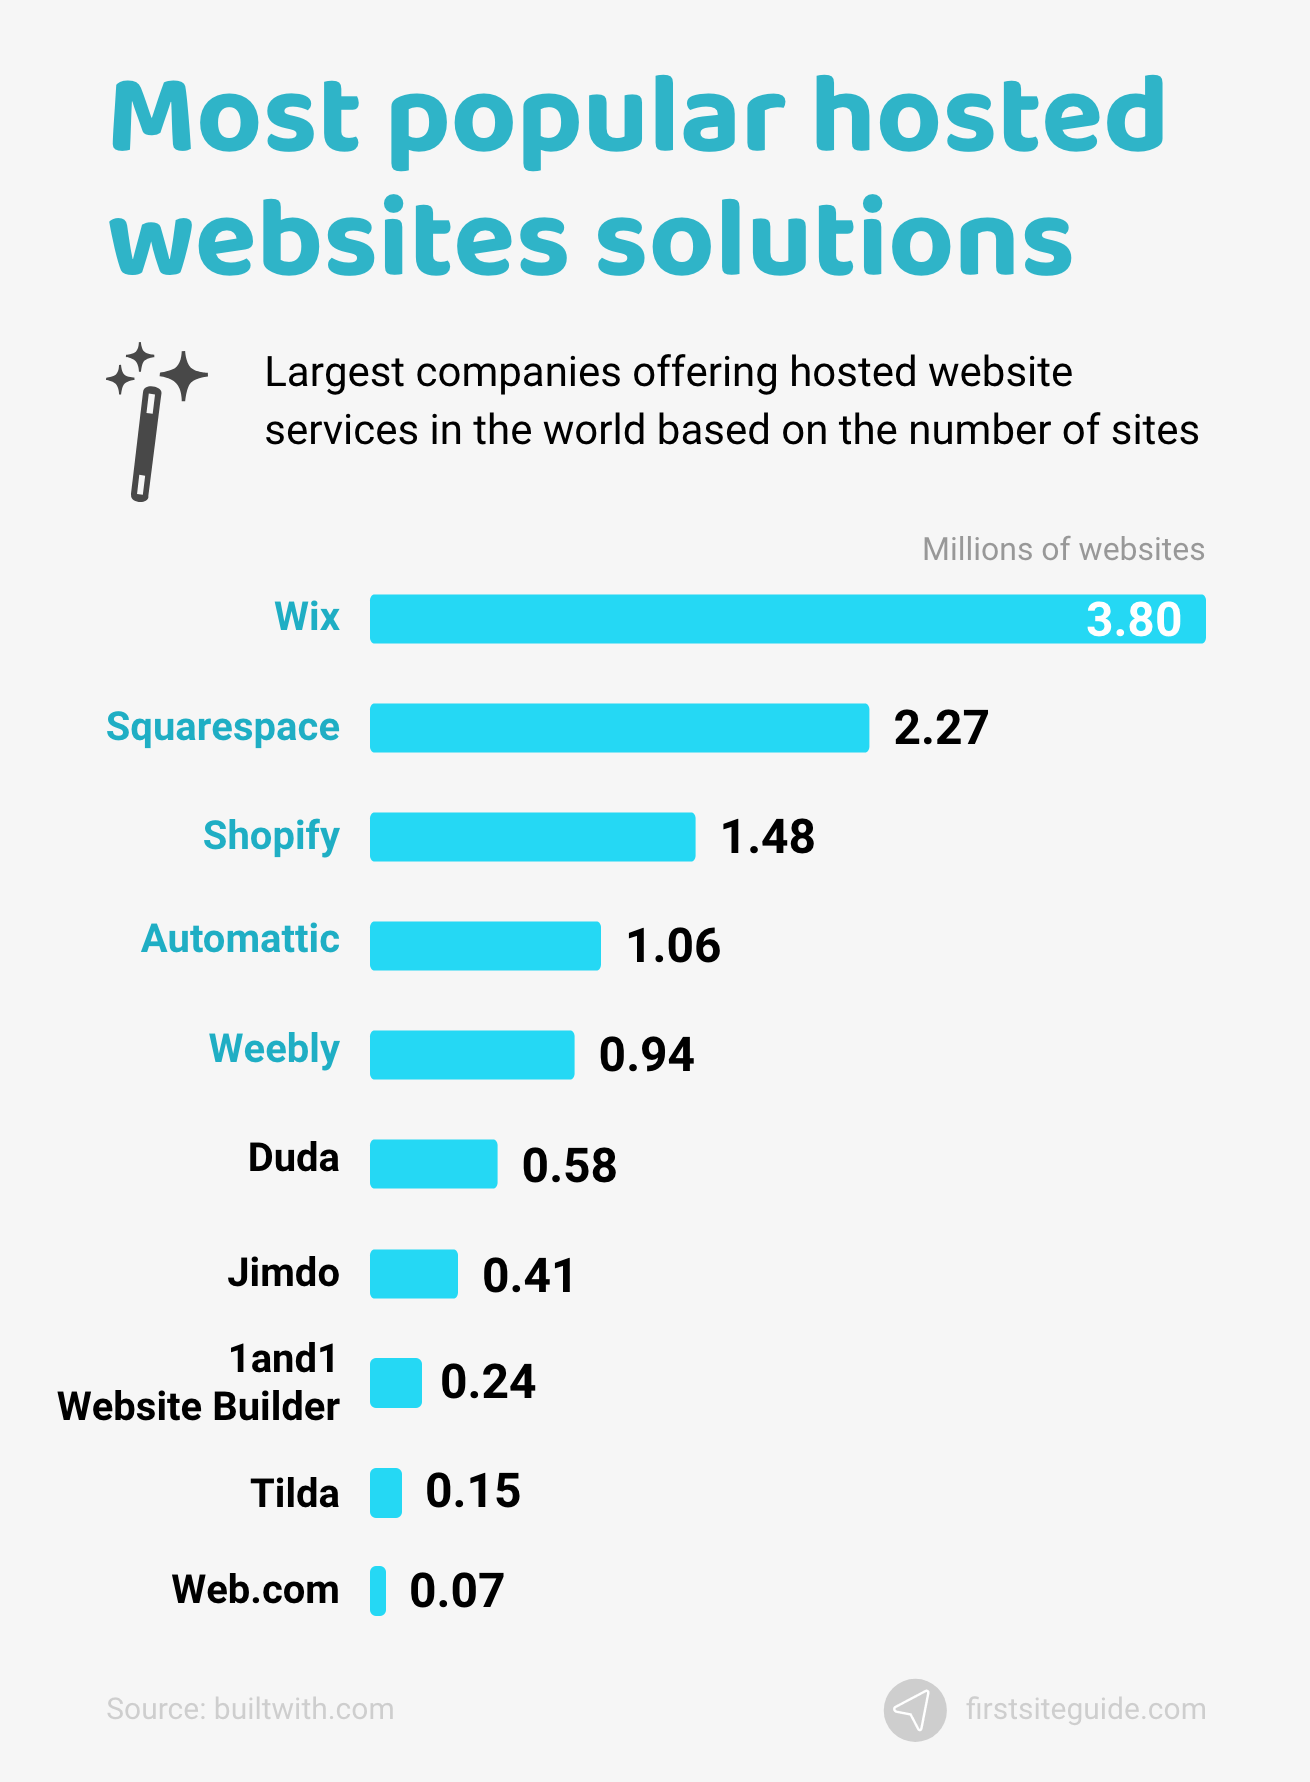 Most popular hosted websites solutions